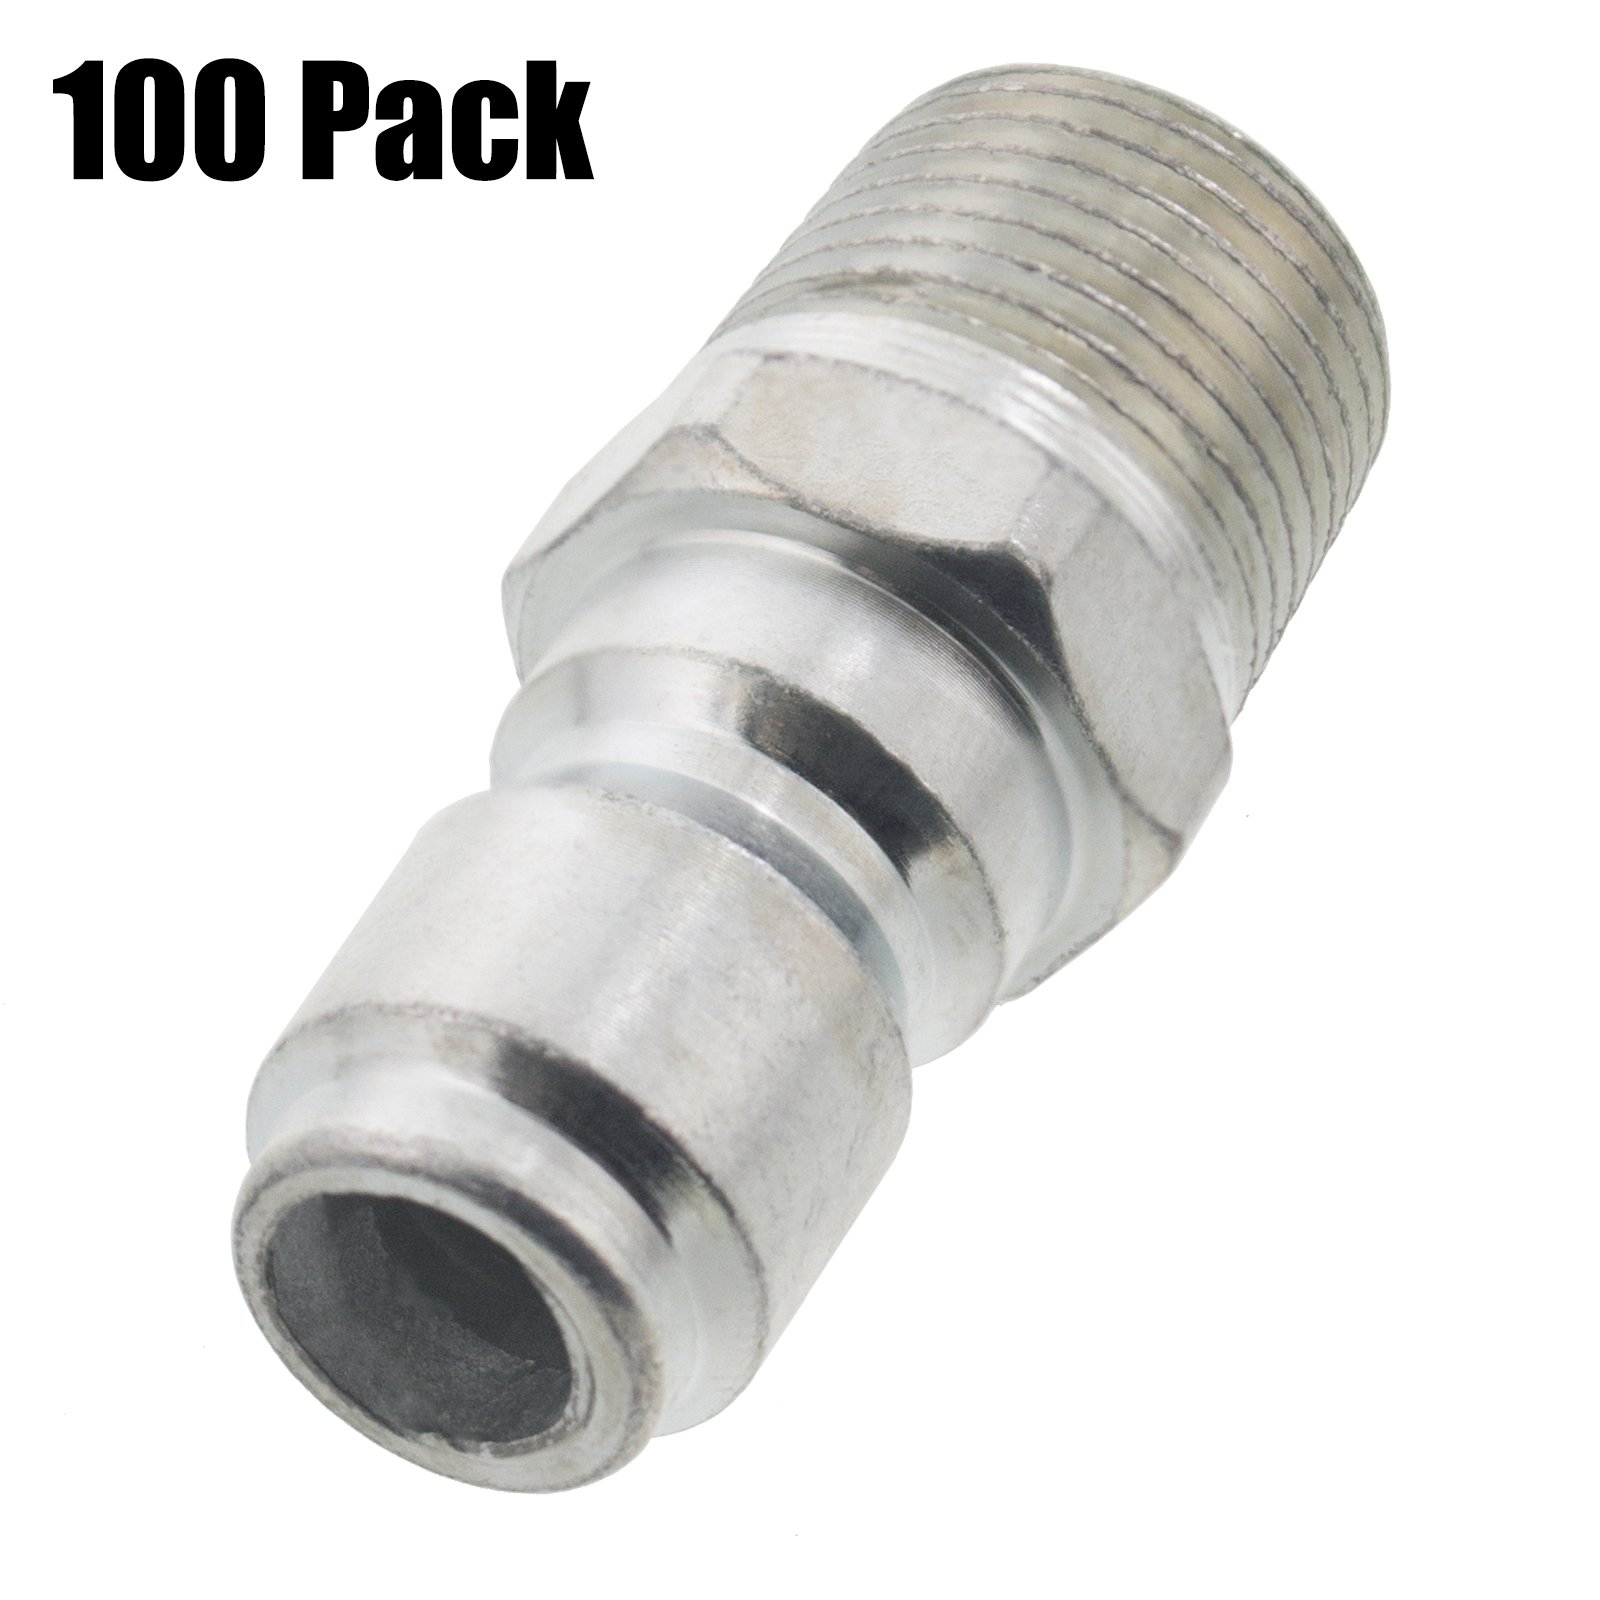 Erie Tools 100 Pressure Washer 3/8 Male NPT to Quick Connect Plug Zinc Plated Coupler, High Temp, 4000 PSI, 10.5 GPM